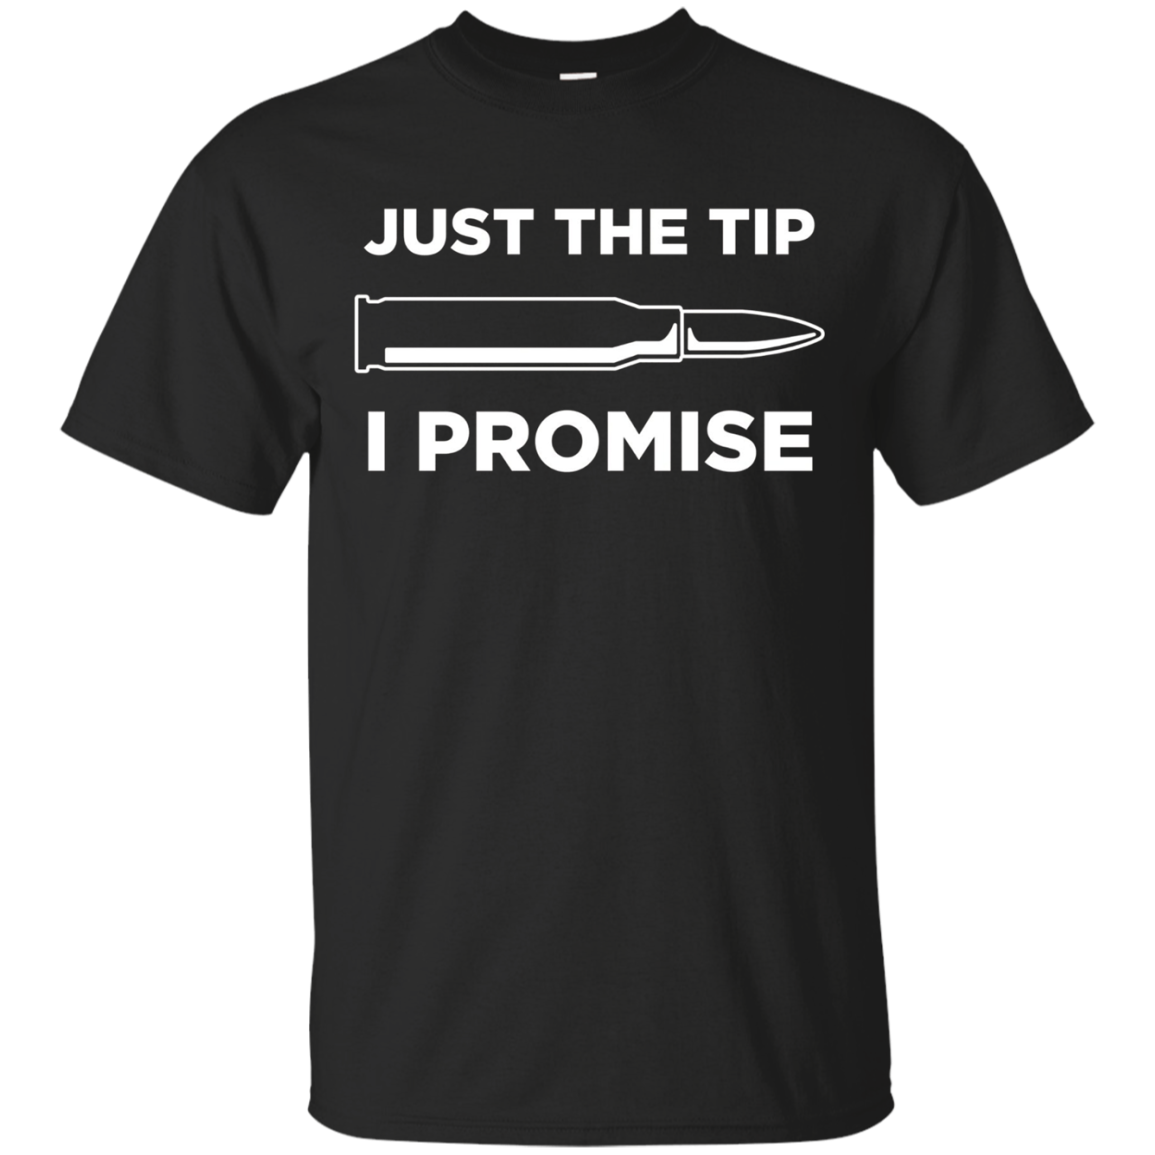 Just The Tip Tshirt Funny Just The Tip I Promise Shirt